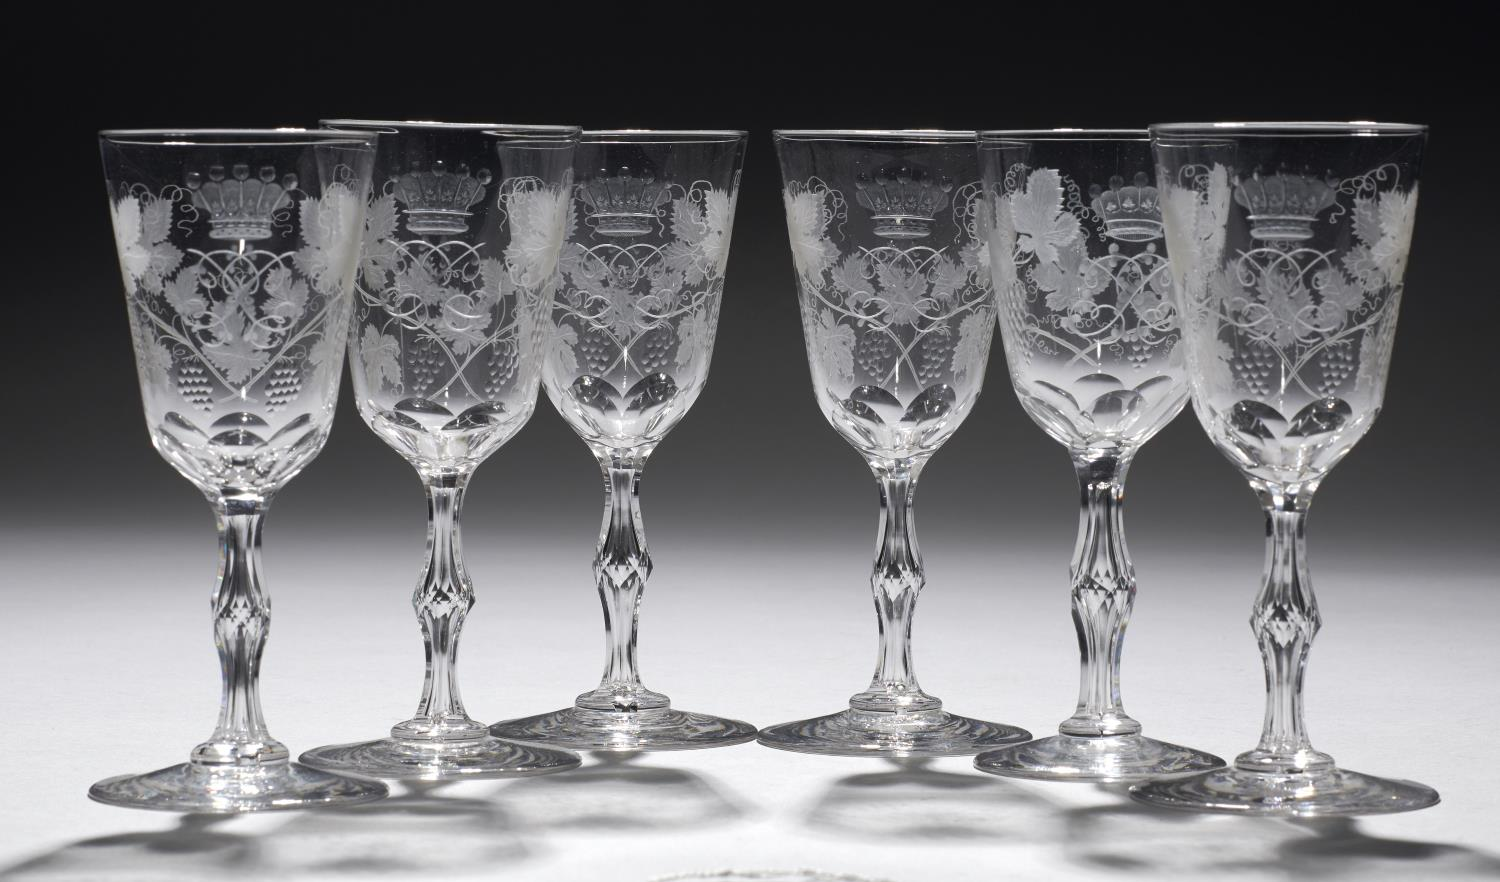 A SET OF SIX ENGLISH WINE GLASSES, EARLY 20TH C engraved with a mirror monogram beneath the